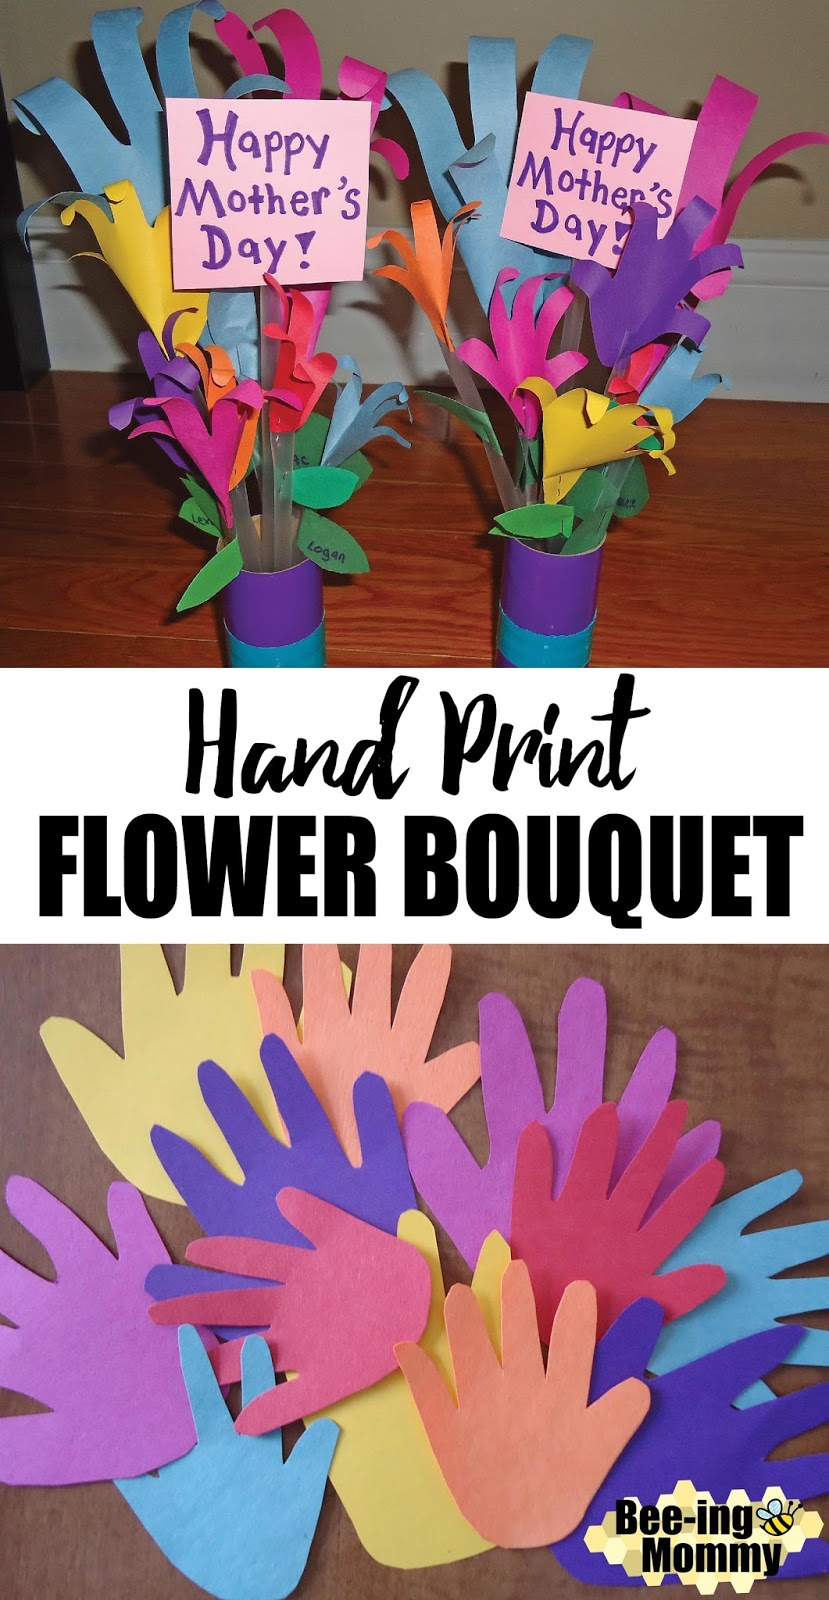 Bee ing mommy blog hand print flower bouquet mothers day gift mothers day hand print flower bouquet flower bouquet diy izmirmasajfo